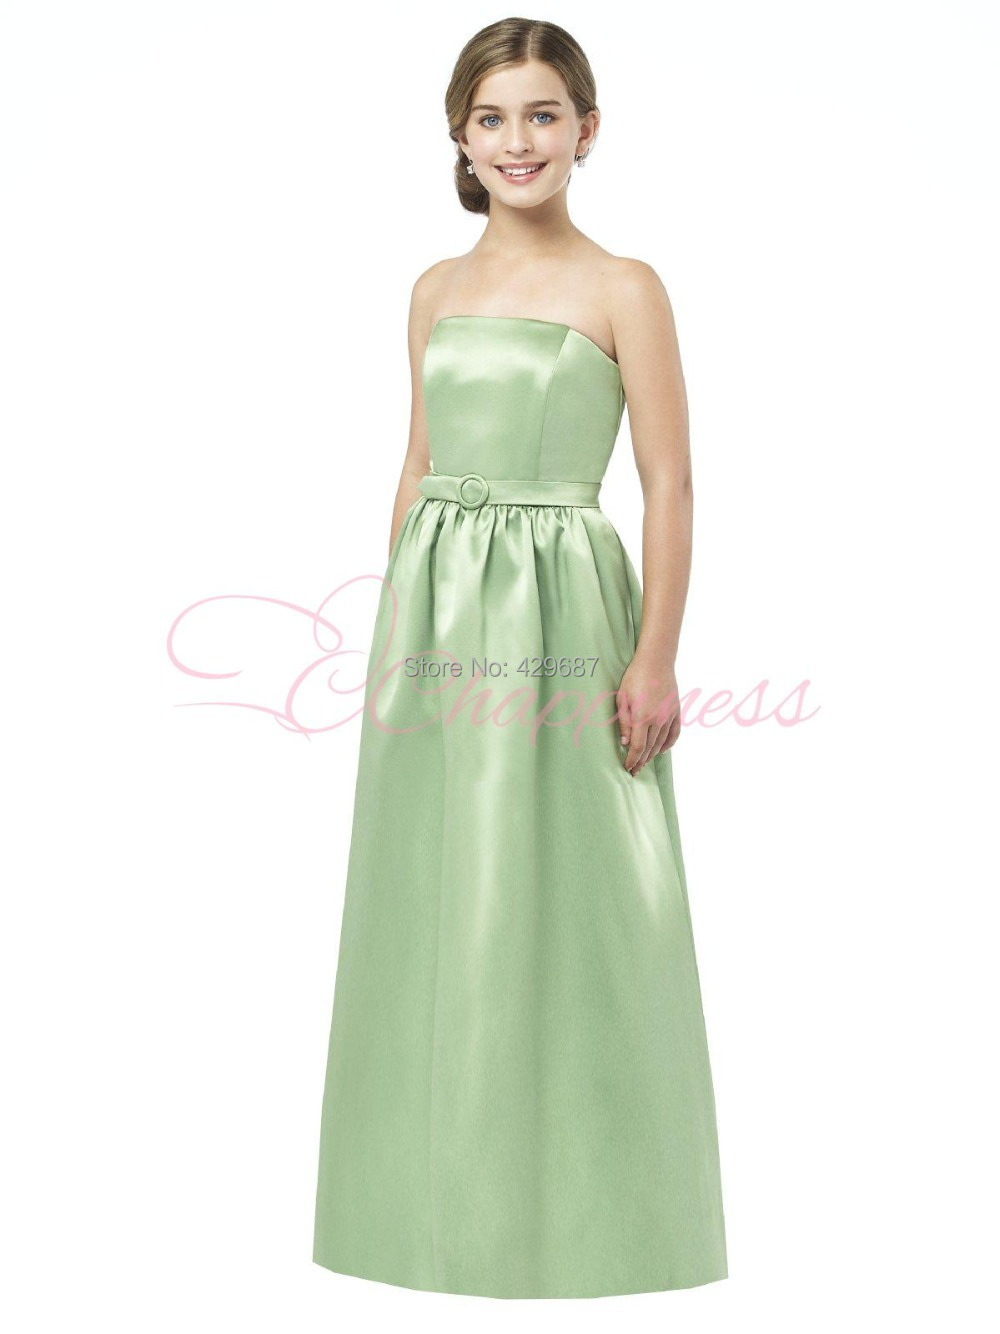 Compare Prices on Junior Bridesmaid Dress Mint- Online Shopping ...